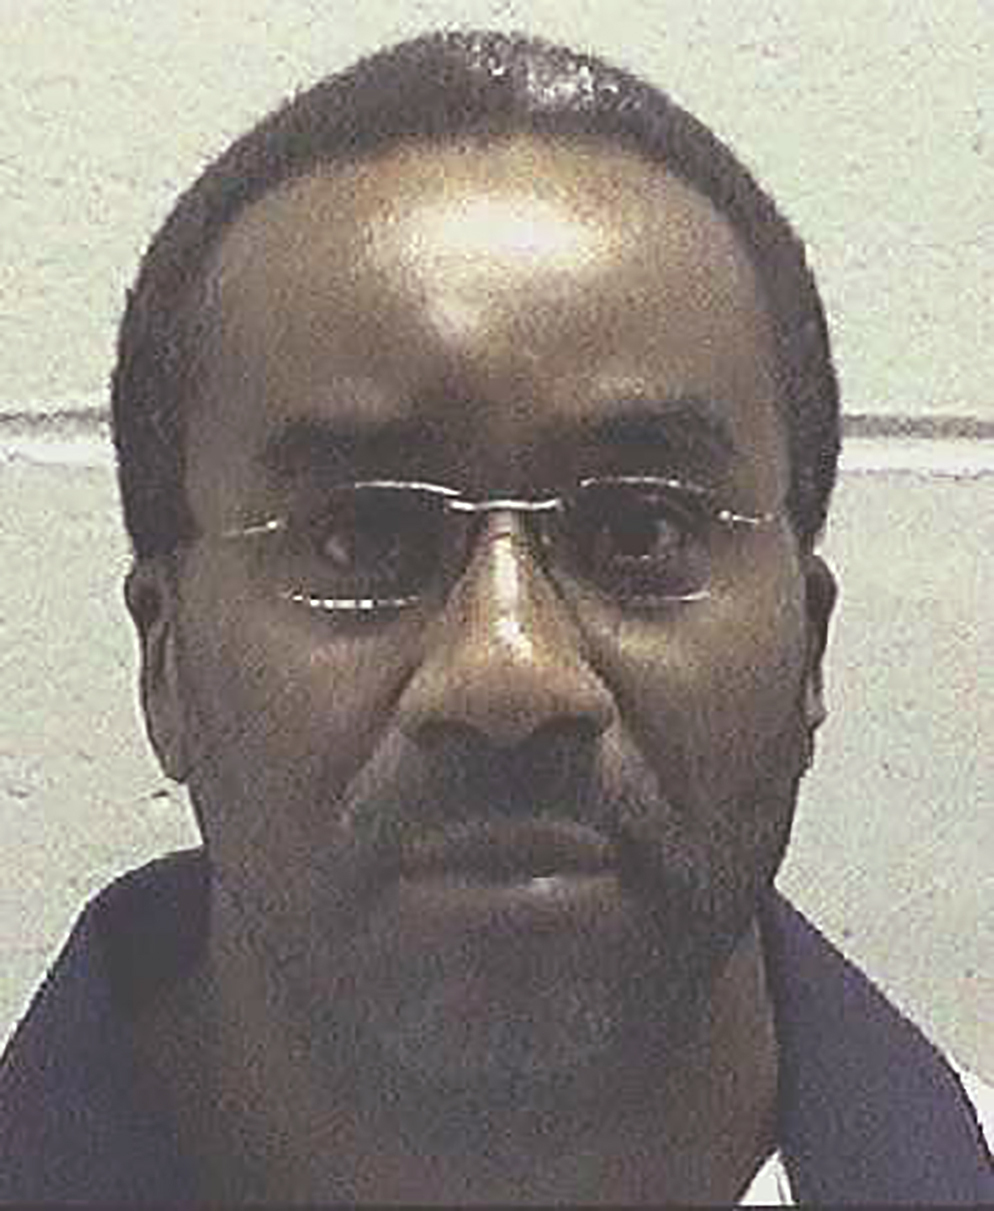 Georgia high court declines to hear appeal or halt execution